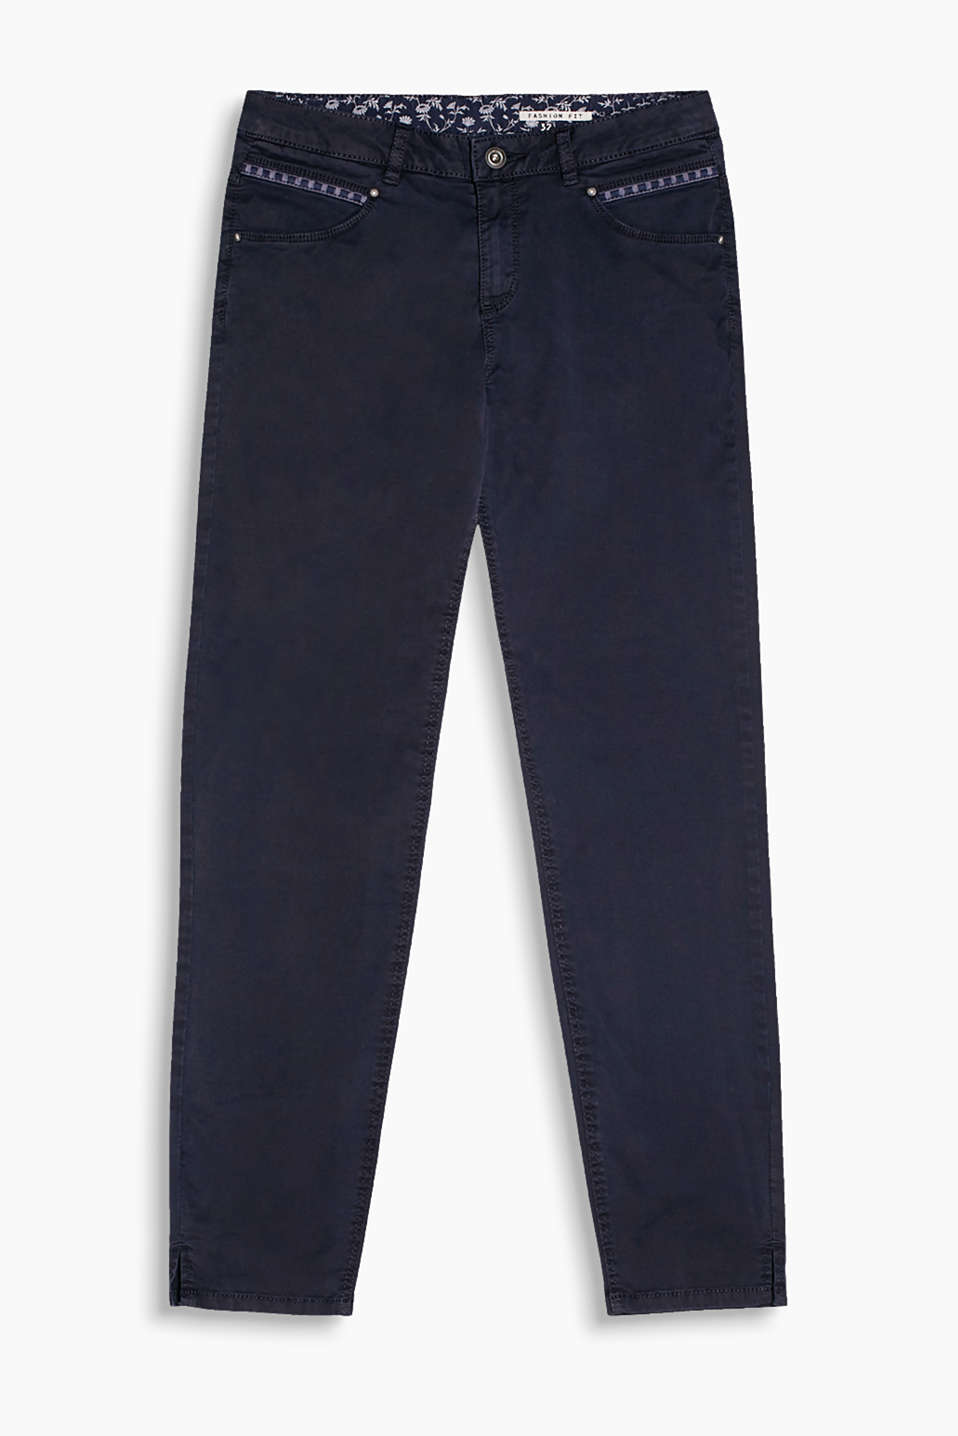 Five-pocket trousers in a garment-washed look with embroidered front pockets